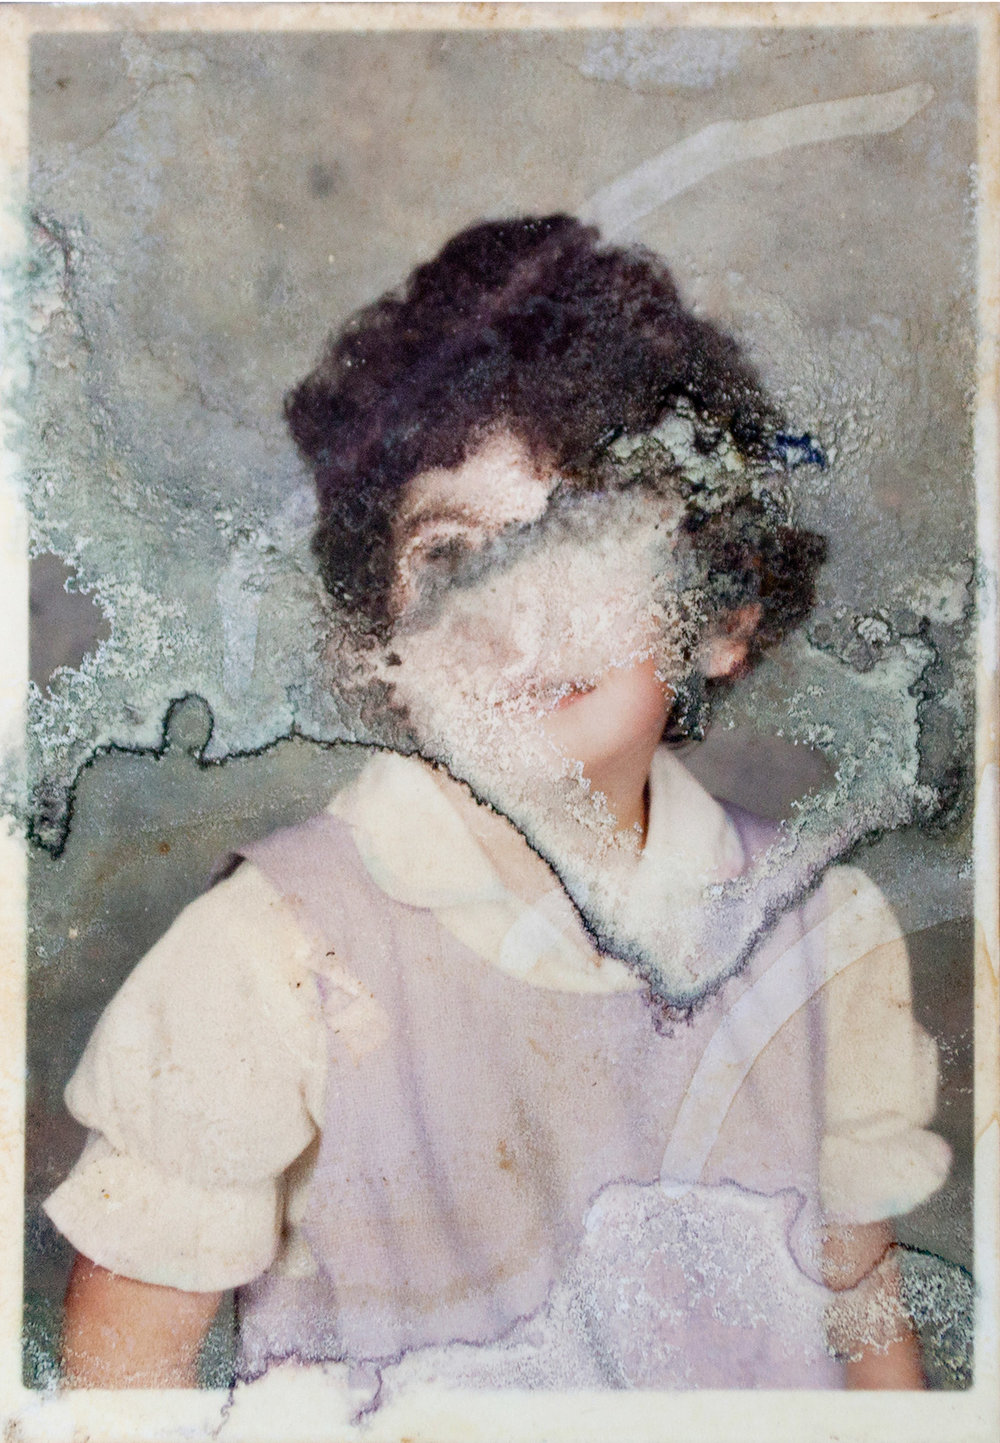 This found photo features one of the girls who testified in the sexual abuse trials of 2004. As a result the girl in the photo has been scrubbed out of Pitcairn history. This was the only image or physical trace of her that I found anywhere on the island. This had been stashed in the back of an album destroyed by water in the last remaining traditional dunnage house on Pitcairn, a house owned by a former culture teacher at the island school, from where this school photo originated.  Her face has been obscured and distorted, as though the physical environment of Pitcairn itself has slowly destroyed her, or erased her. In a sense this may be the most powerful image of my trip, drawing the parallel between Pitcairn's particular geography and some of the lasting effects on its people. When I left Pitcairn, I too felt emotionally destroyed – to leave the intensity behind was the greatest sense of freedom I have ever experienced.  From Big Fence / Pitcairn Island © Rhiannon Adam